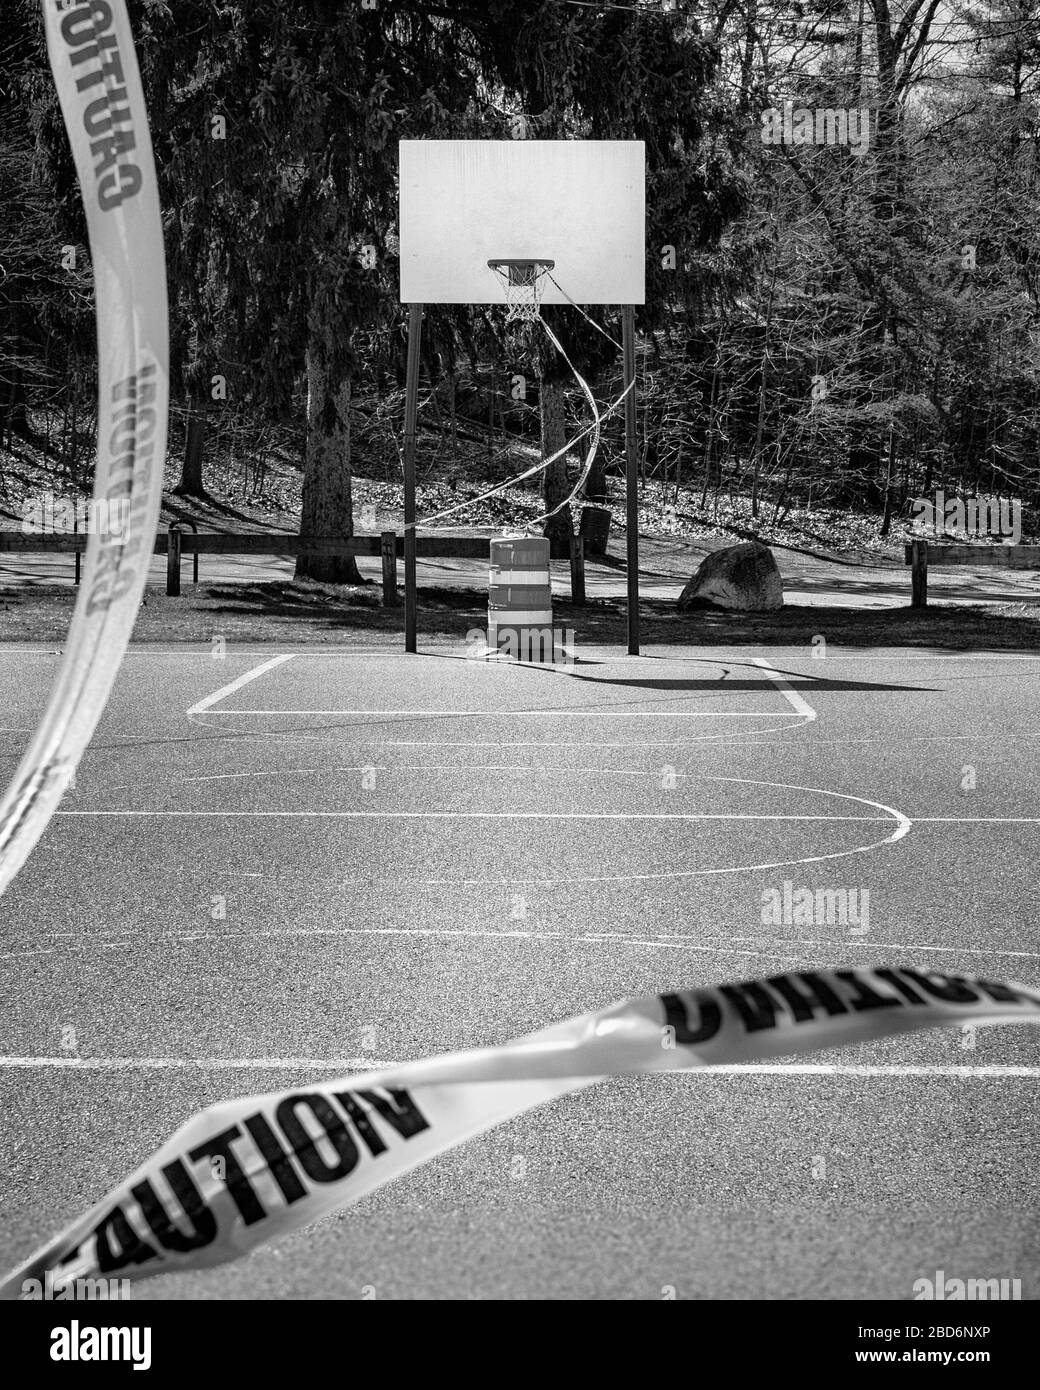 An outdoor basketball court stands closed to COVID-19 (Coronavirus). The basket is roped off by bright yellow caution tape and a pilon. From the view Stock Photo